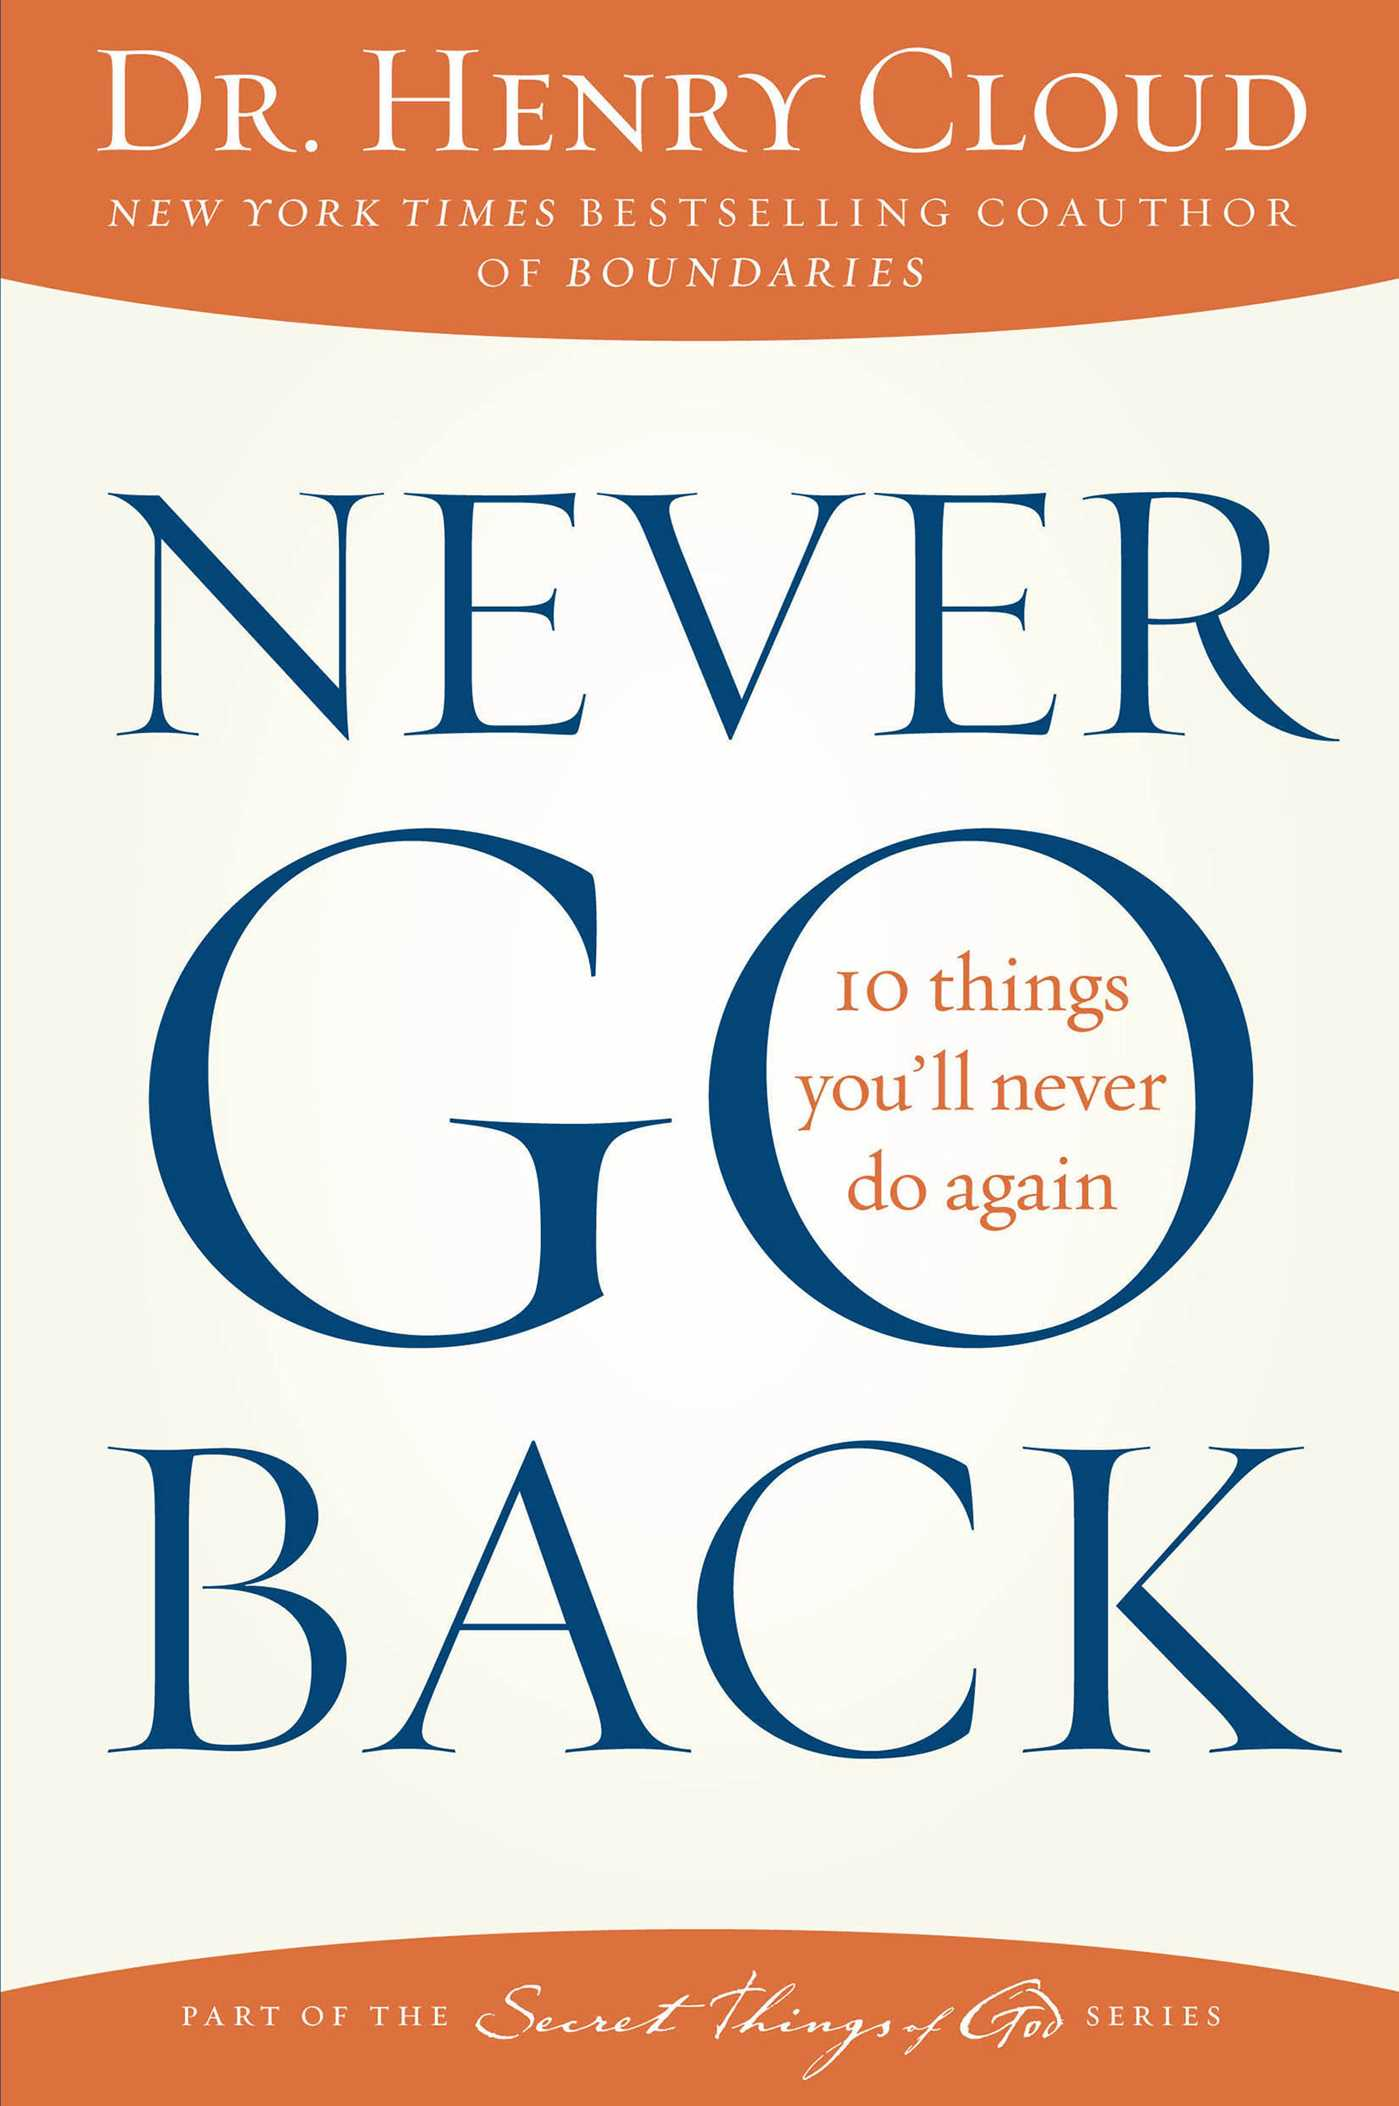 Never Go Back, by Henry Cloud